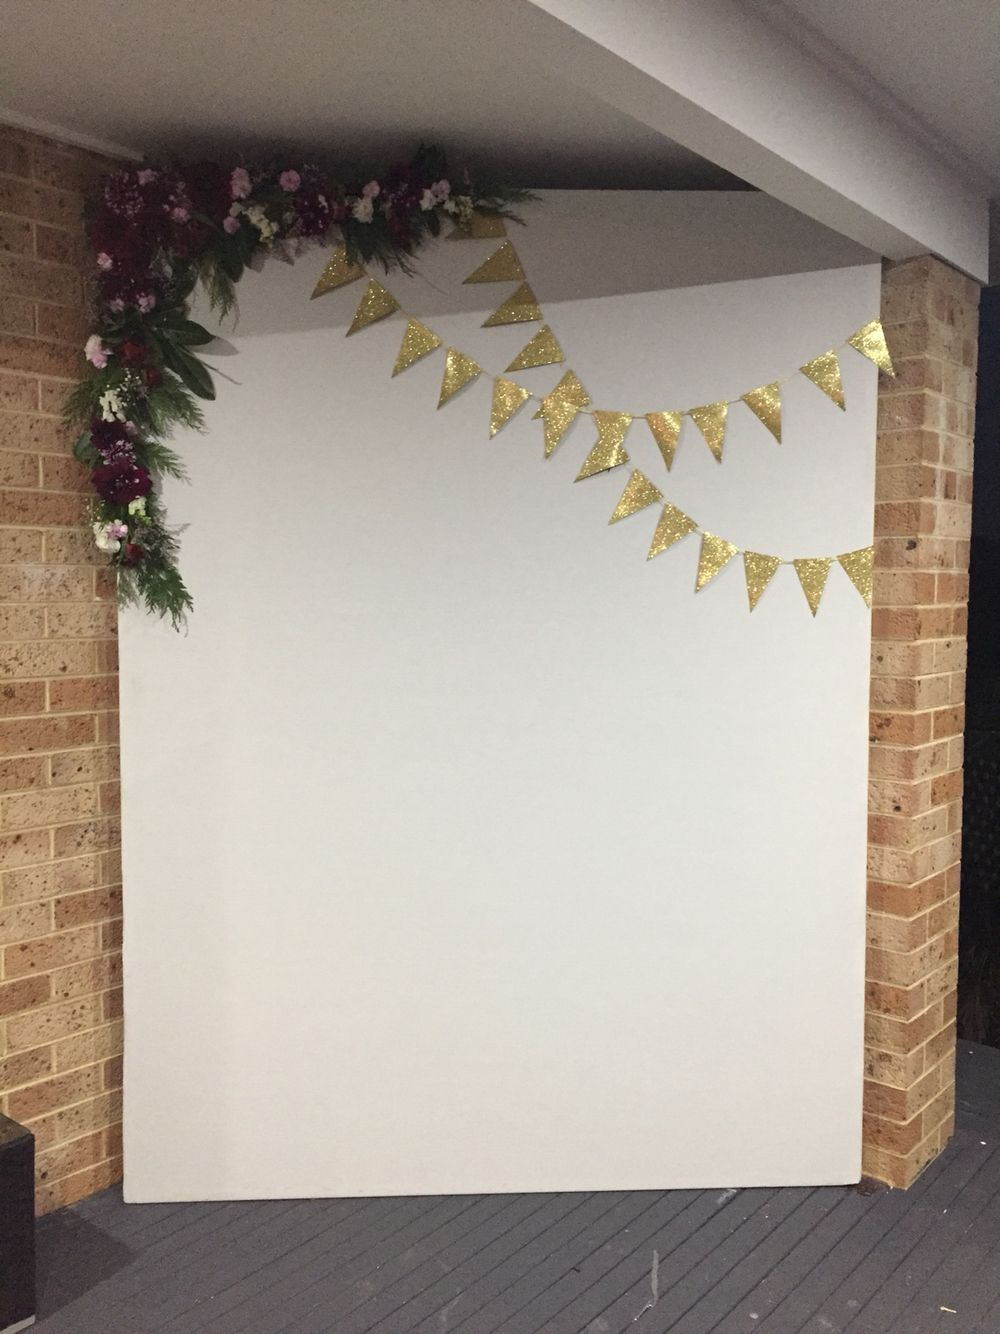 Diy photo booth wall for engagement party graduation